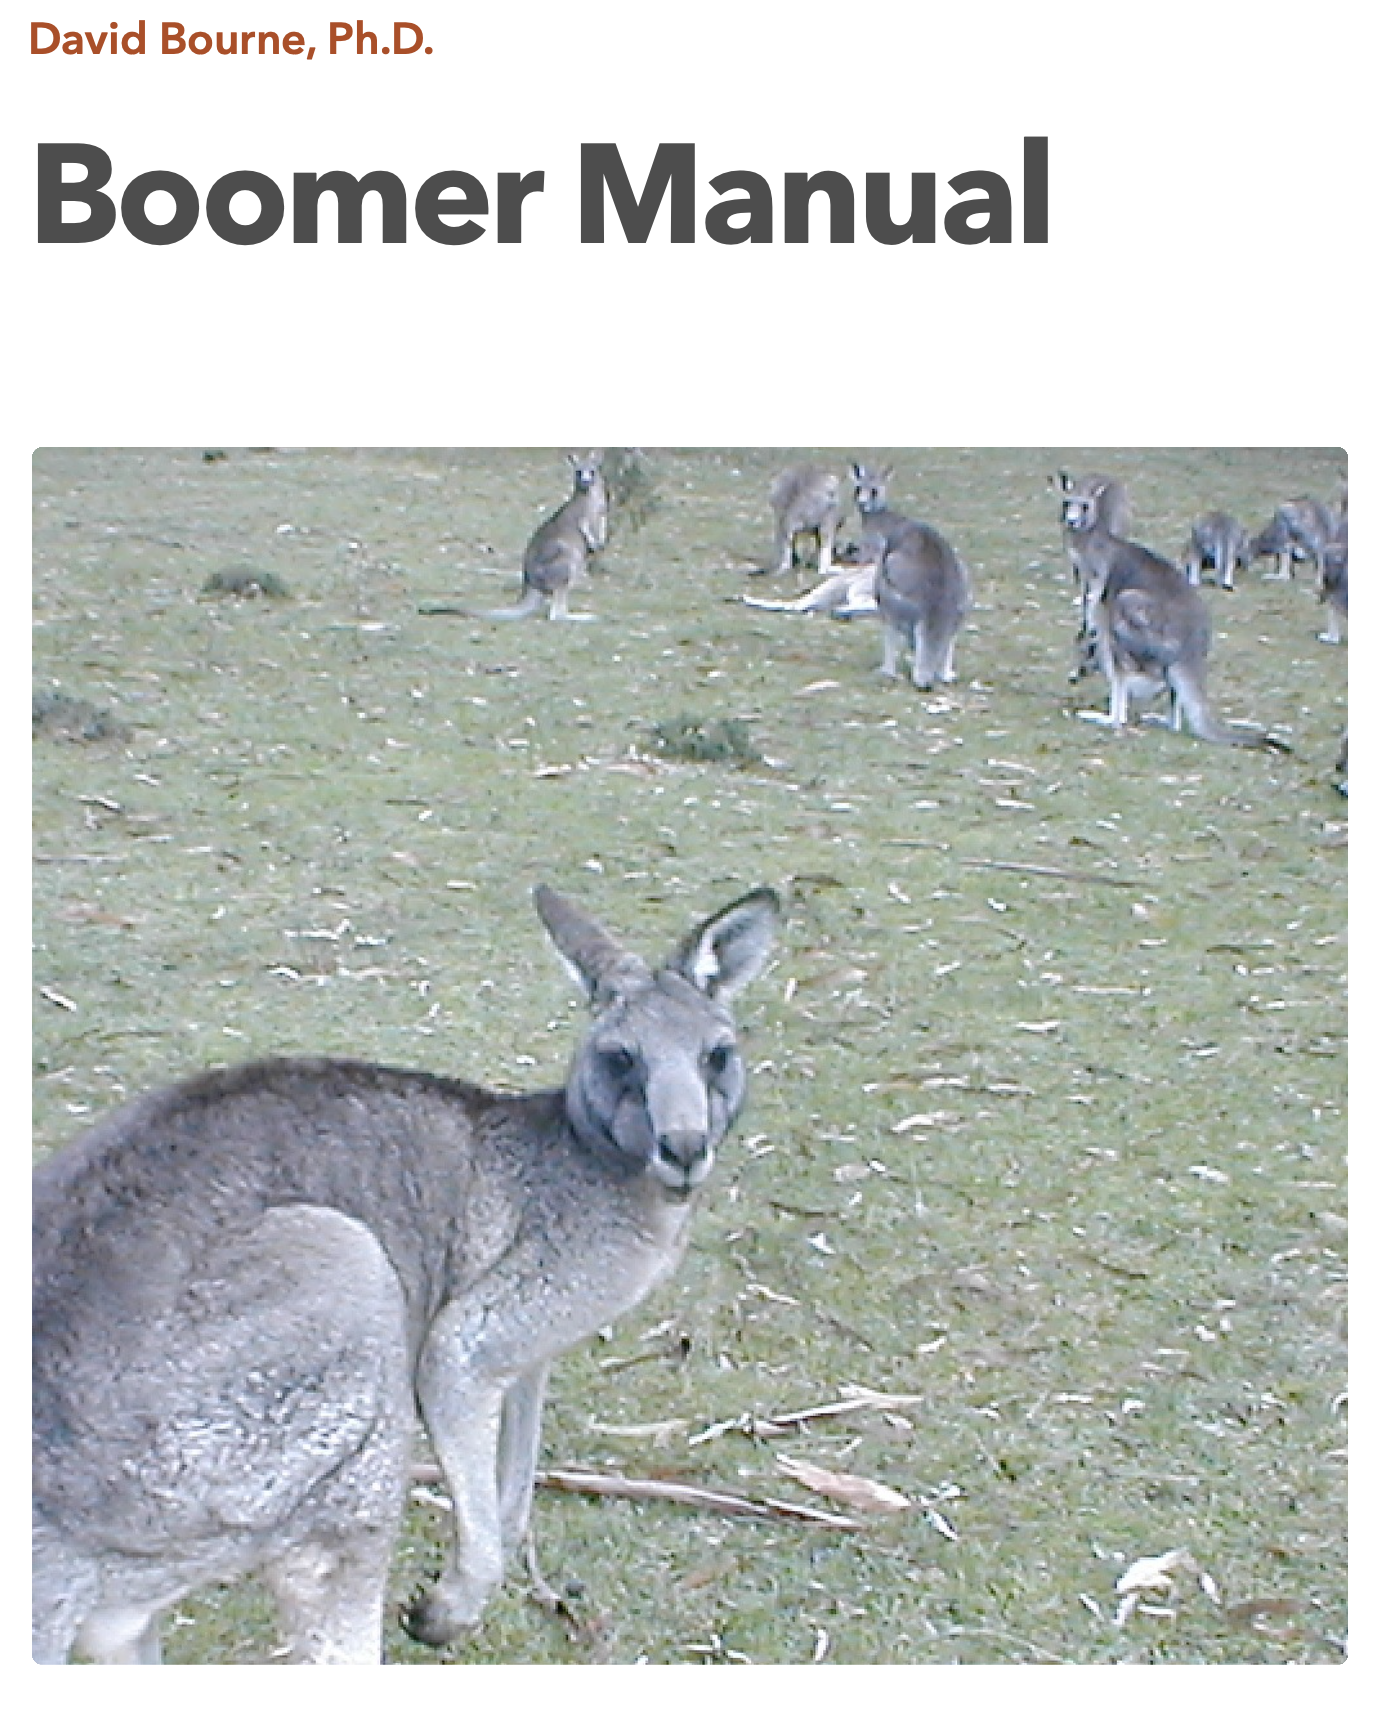 Boomer Manual cover